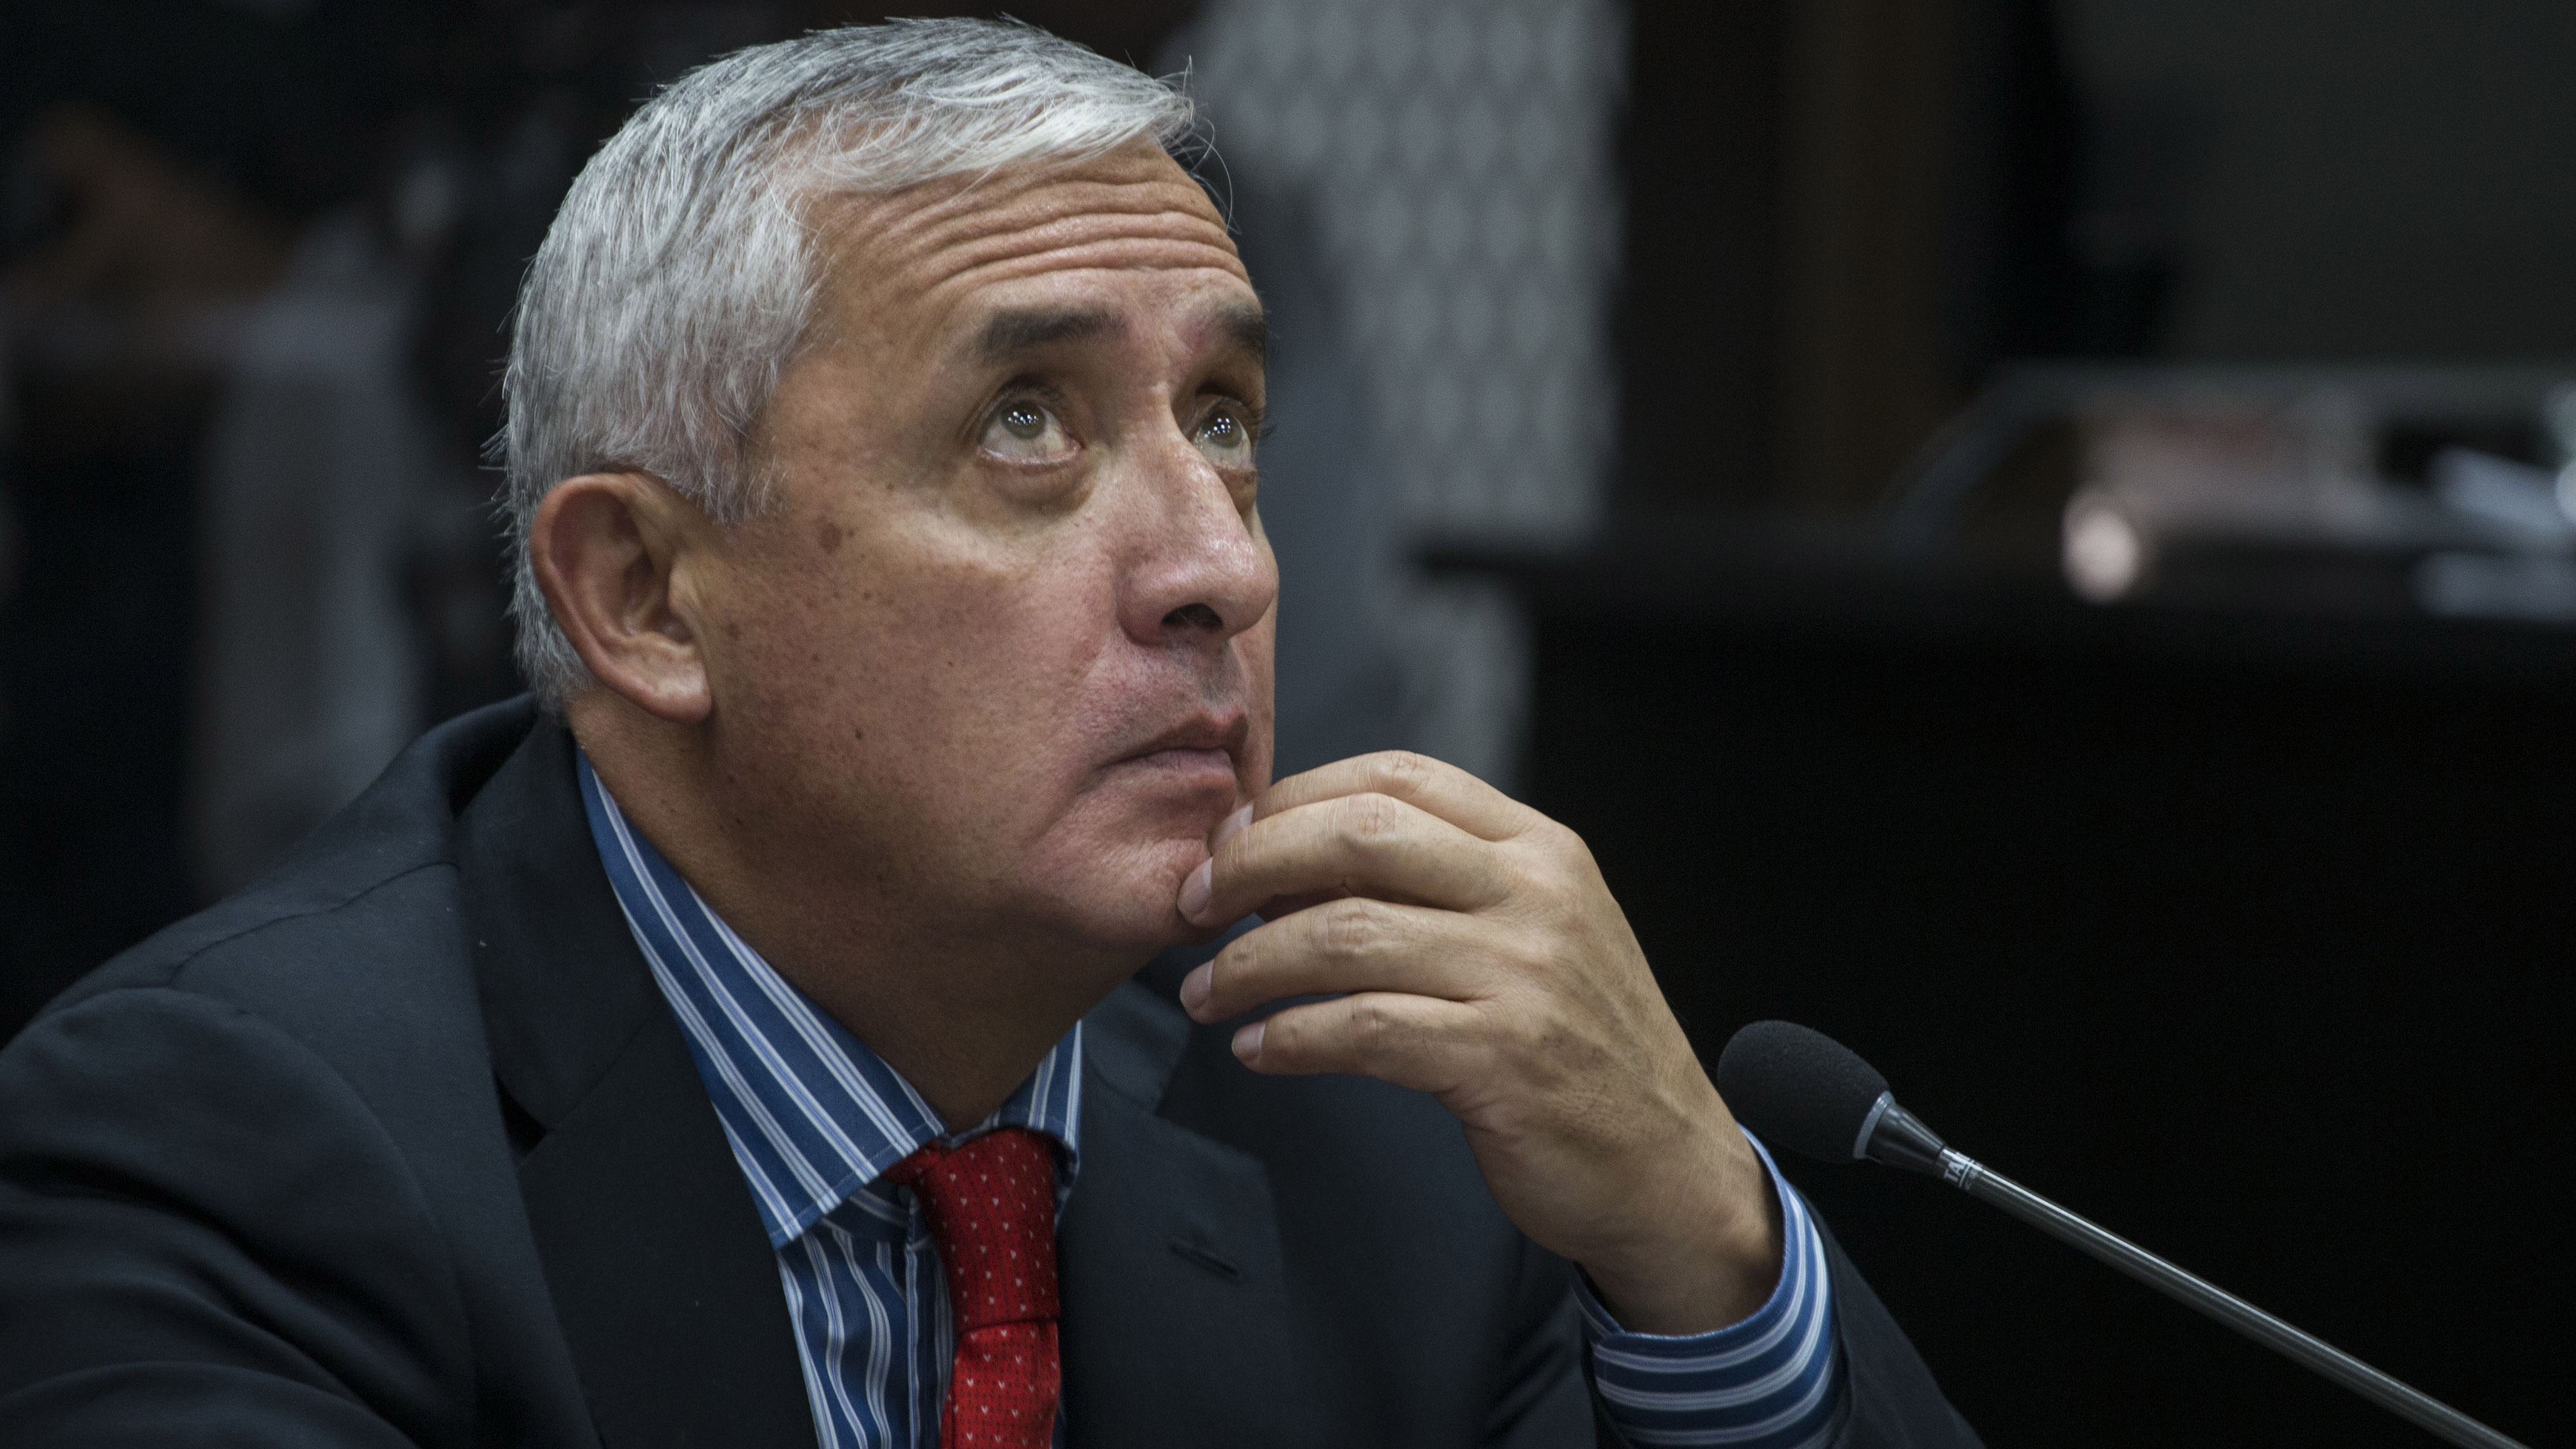 Guatemala's former president Otto Perez Molina sits in court to face corruption charges in Guatemala City, Thursday, Sept. 3, 2015. Perez Molina resigned late Wednesday after a judge issued an order for this detention, accused of leading a customs fraud ring.